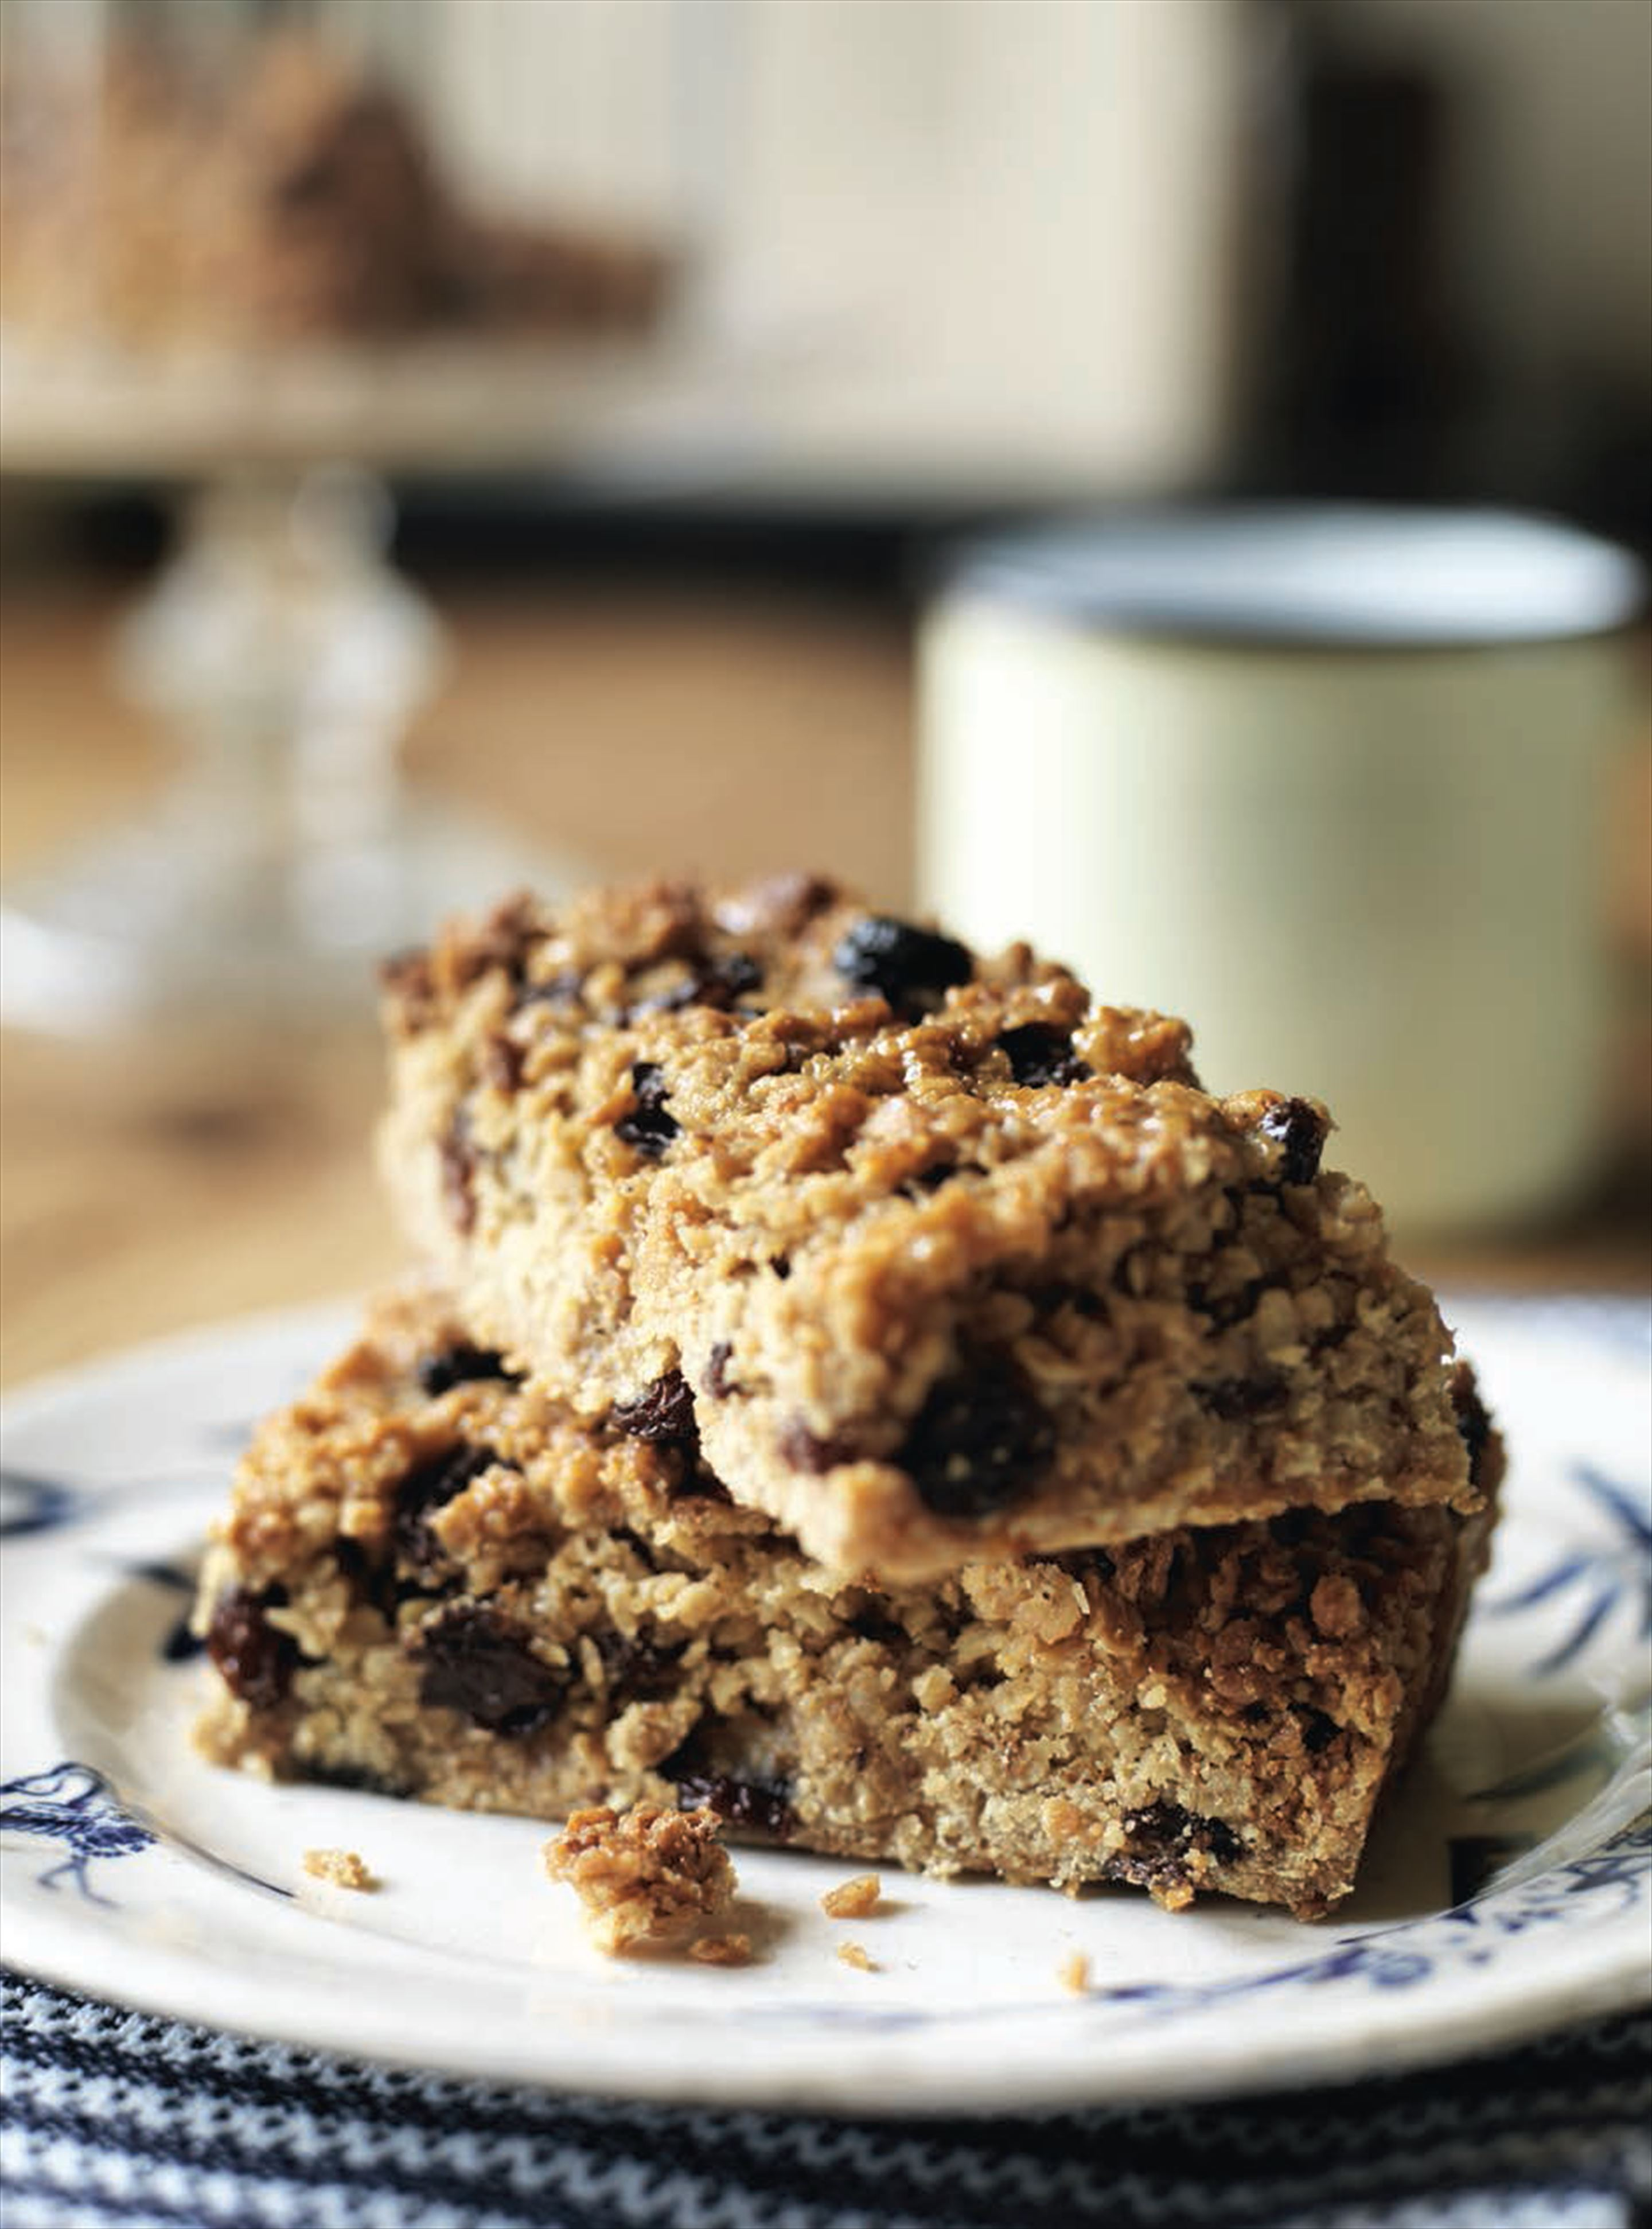 Honey and sultana flapjacks